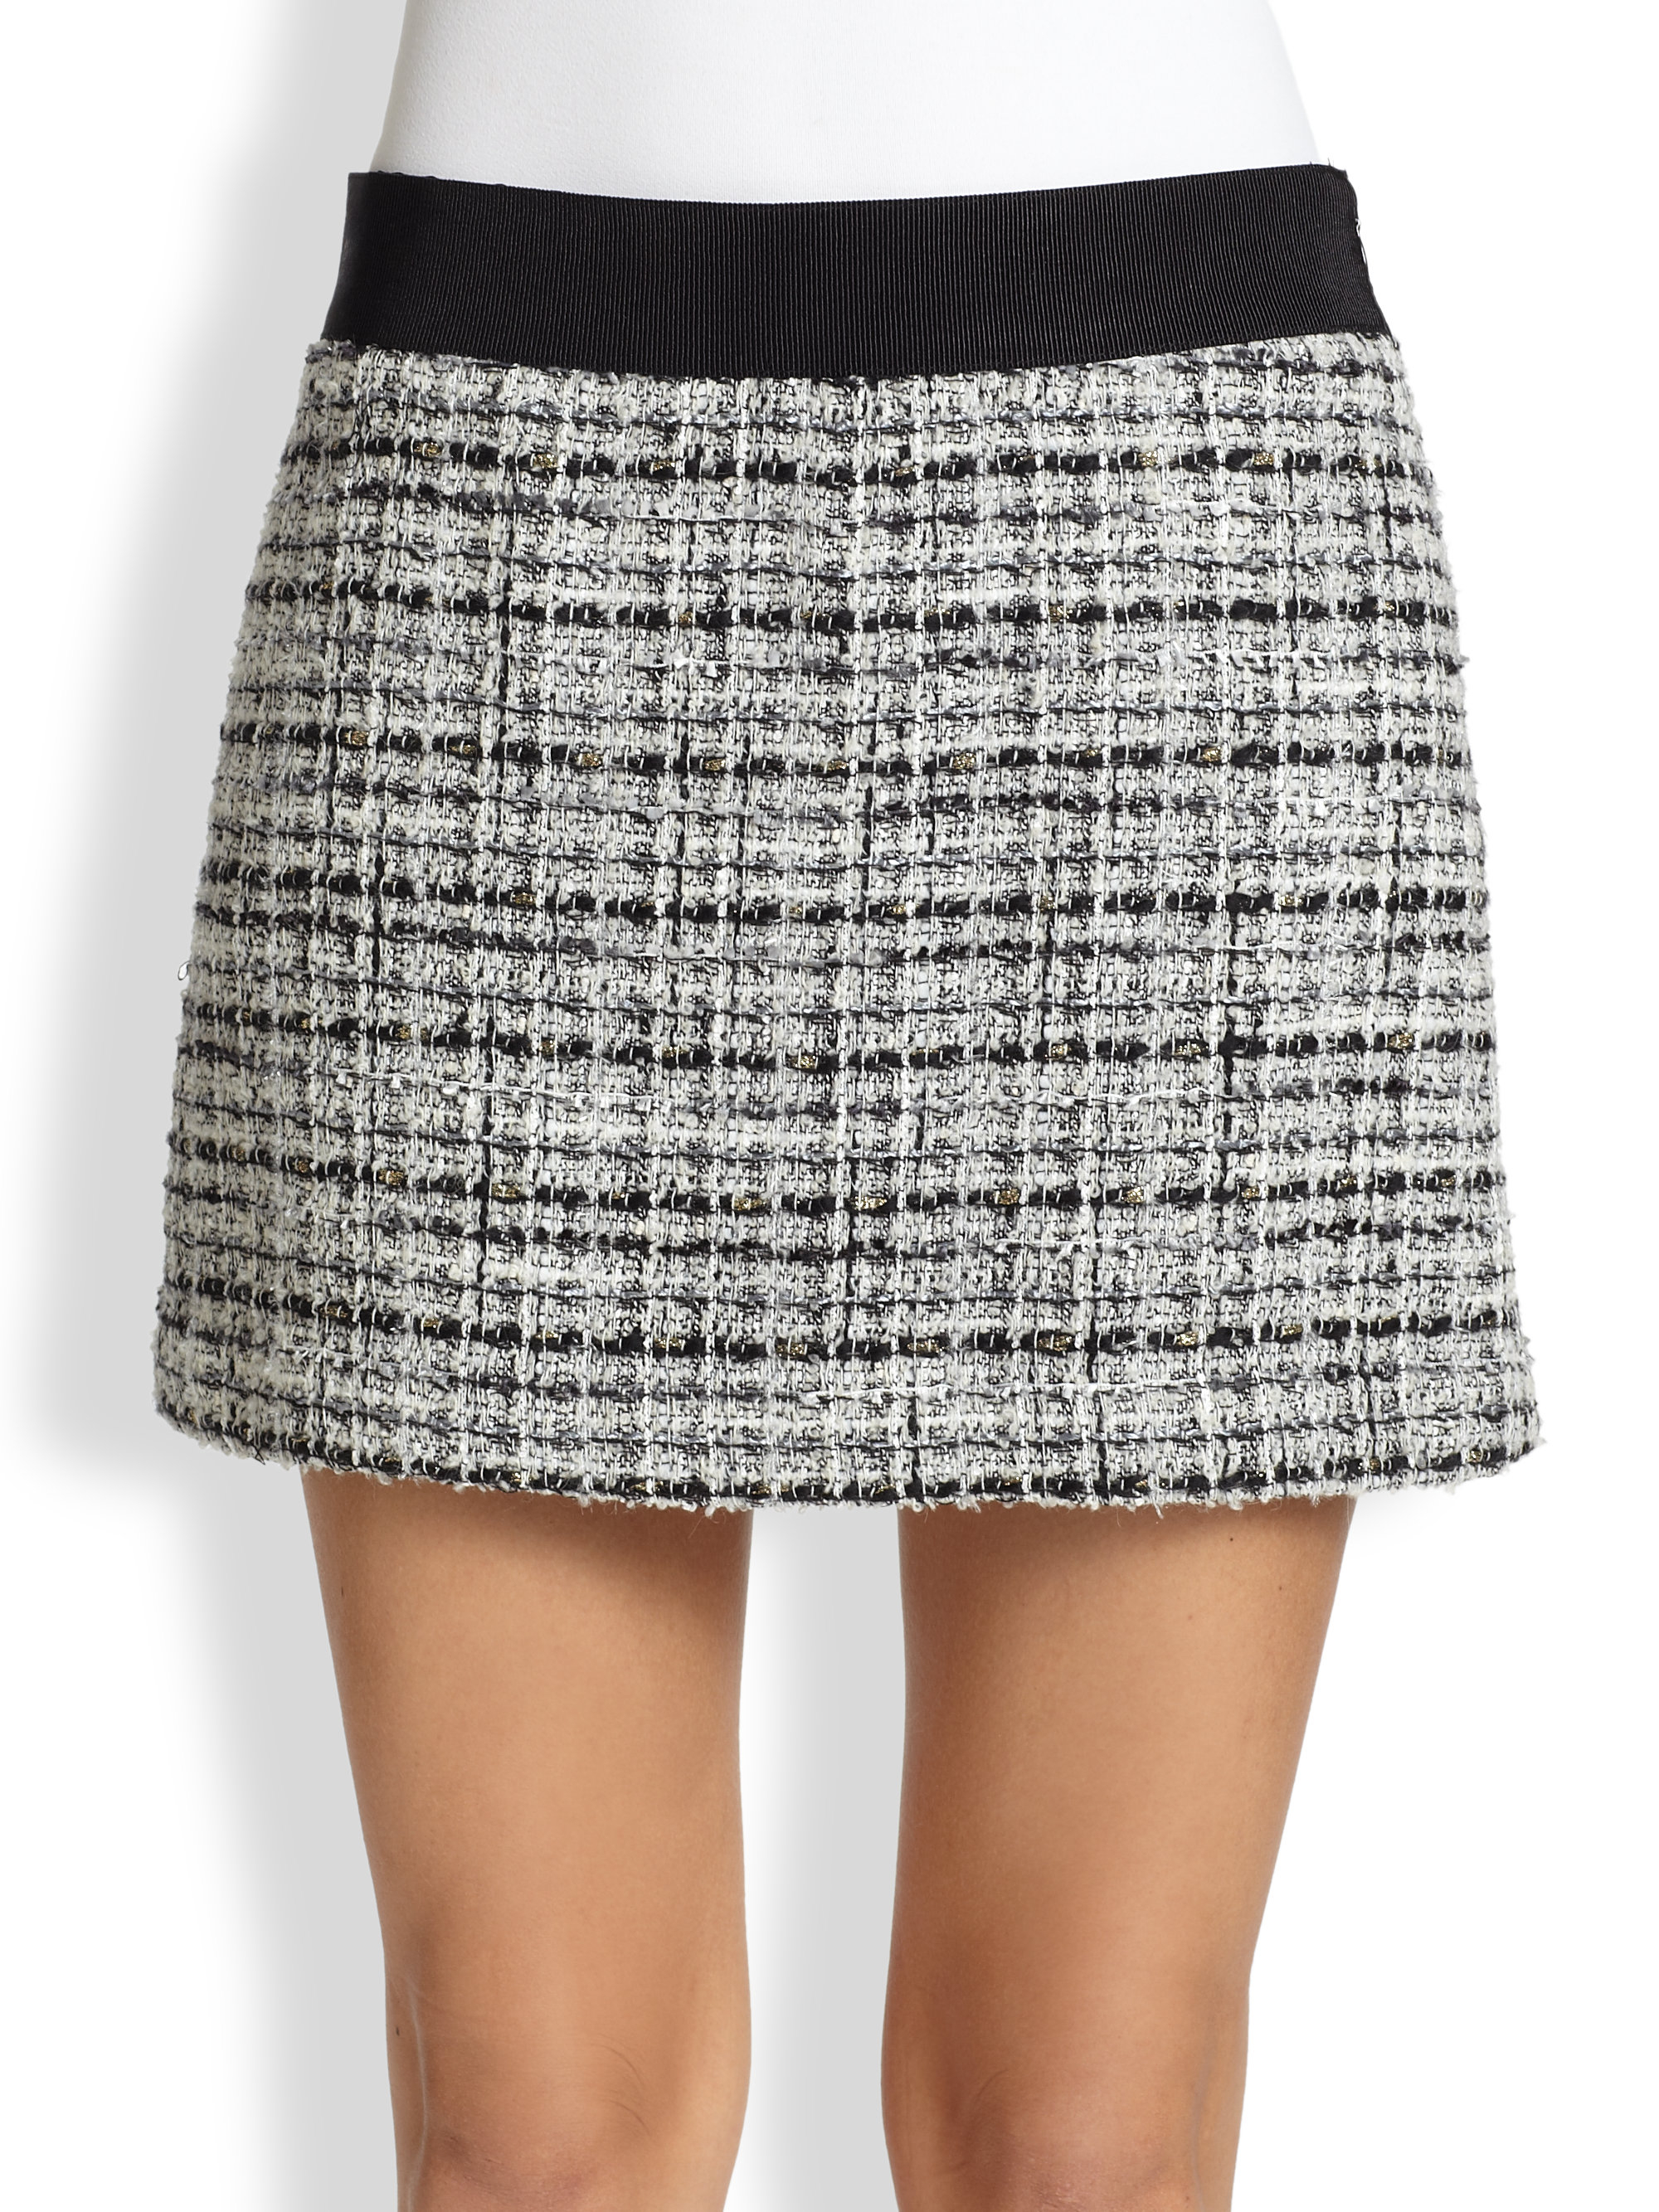 Milly Tweed Mini Skirt in Black | Lyst